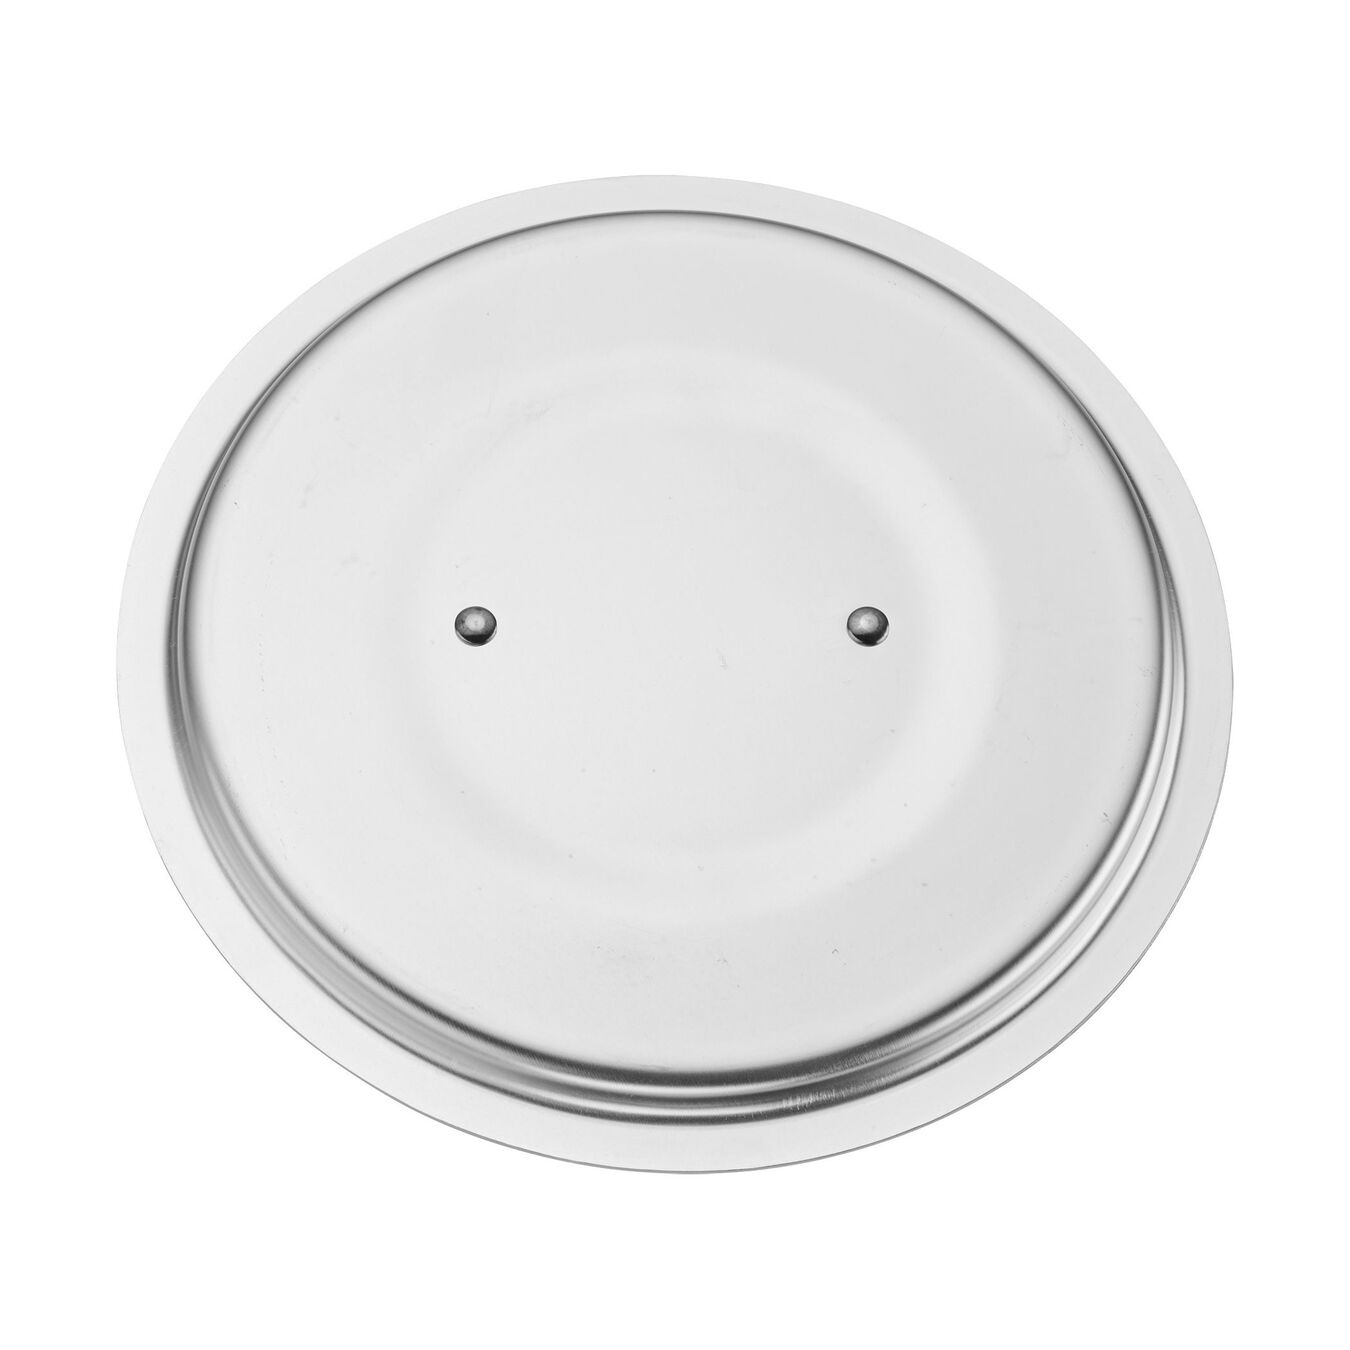 11-inch Braiser With Lid,,large 5